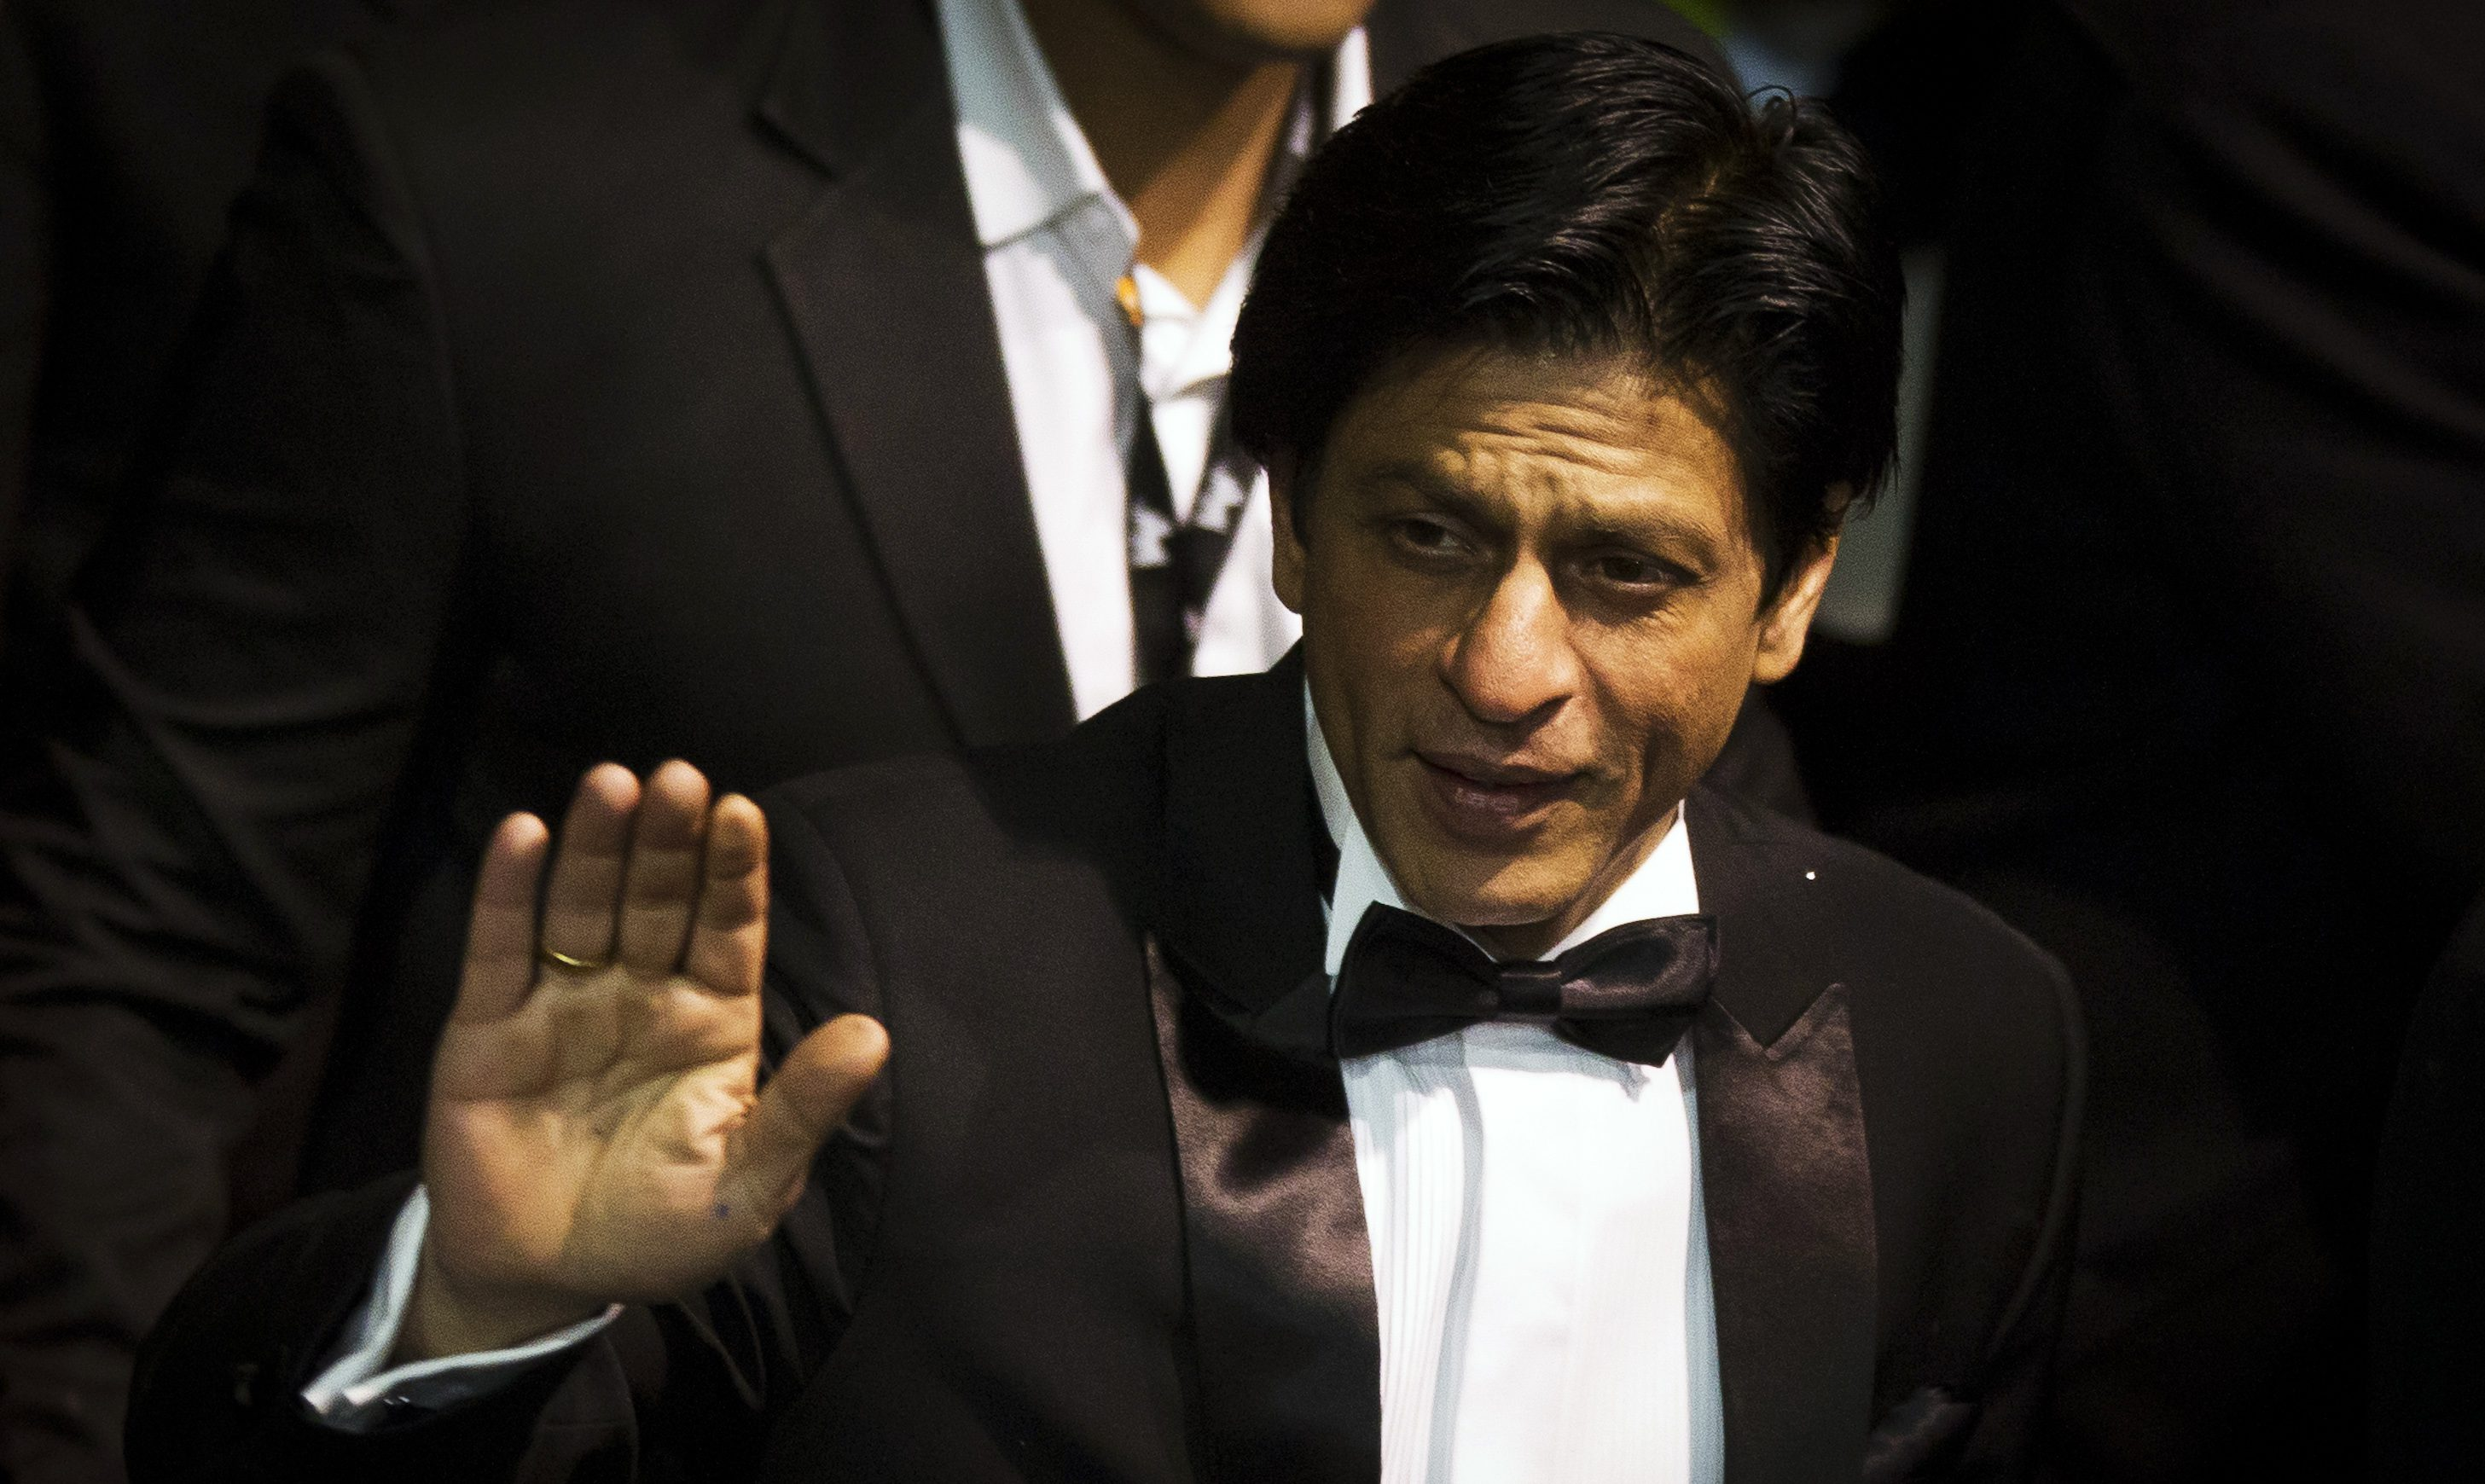 """Cast member Shah Rukh Khan arrives for the screening of the movie """"Don - The King is back"""" at the 62nd Berlinale International Film Festival in Berlin February 11, 2012. REUTERS/Thomas Peter (GERMANY  - Tags: ENTERTAINMENT) - RTR2XOQA"""